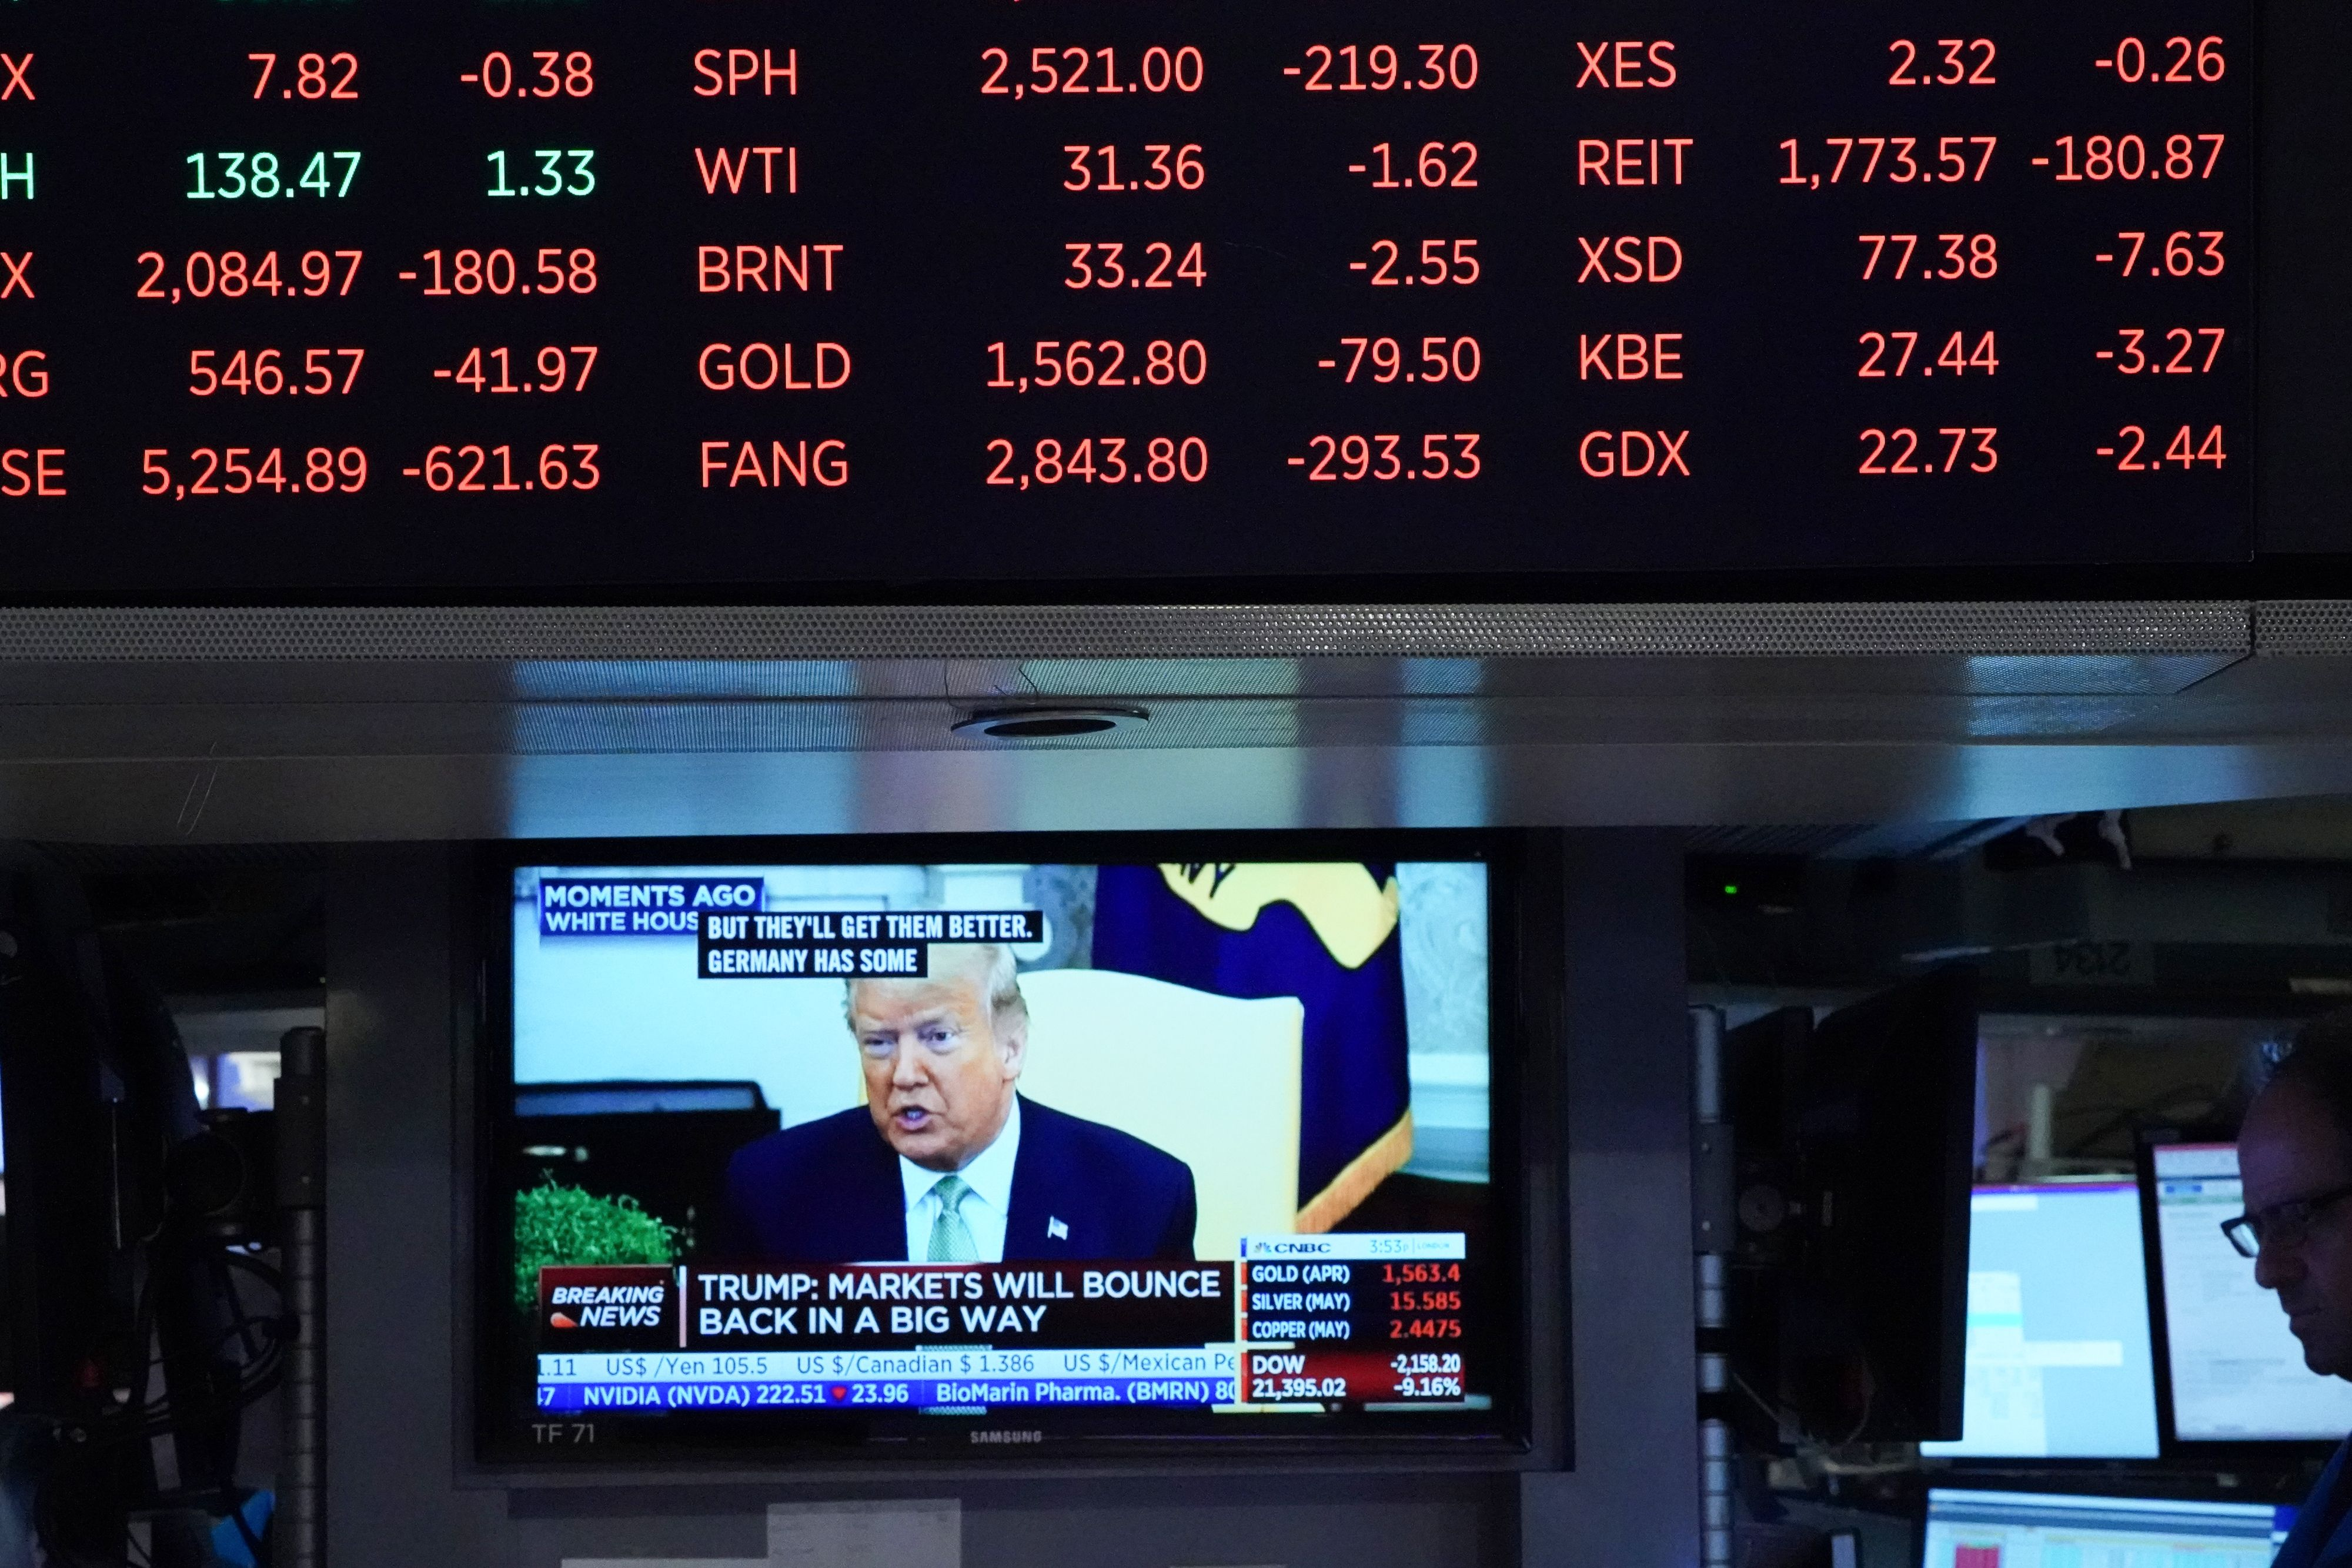 President Donald Trump speaks on television from the White House as stock numbers are displayed on the floor of the New York Stock Exchange on March 12, 2020 in New York. (BRYAN R. SMITH/AFP via Getty Images)